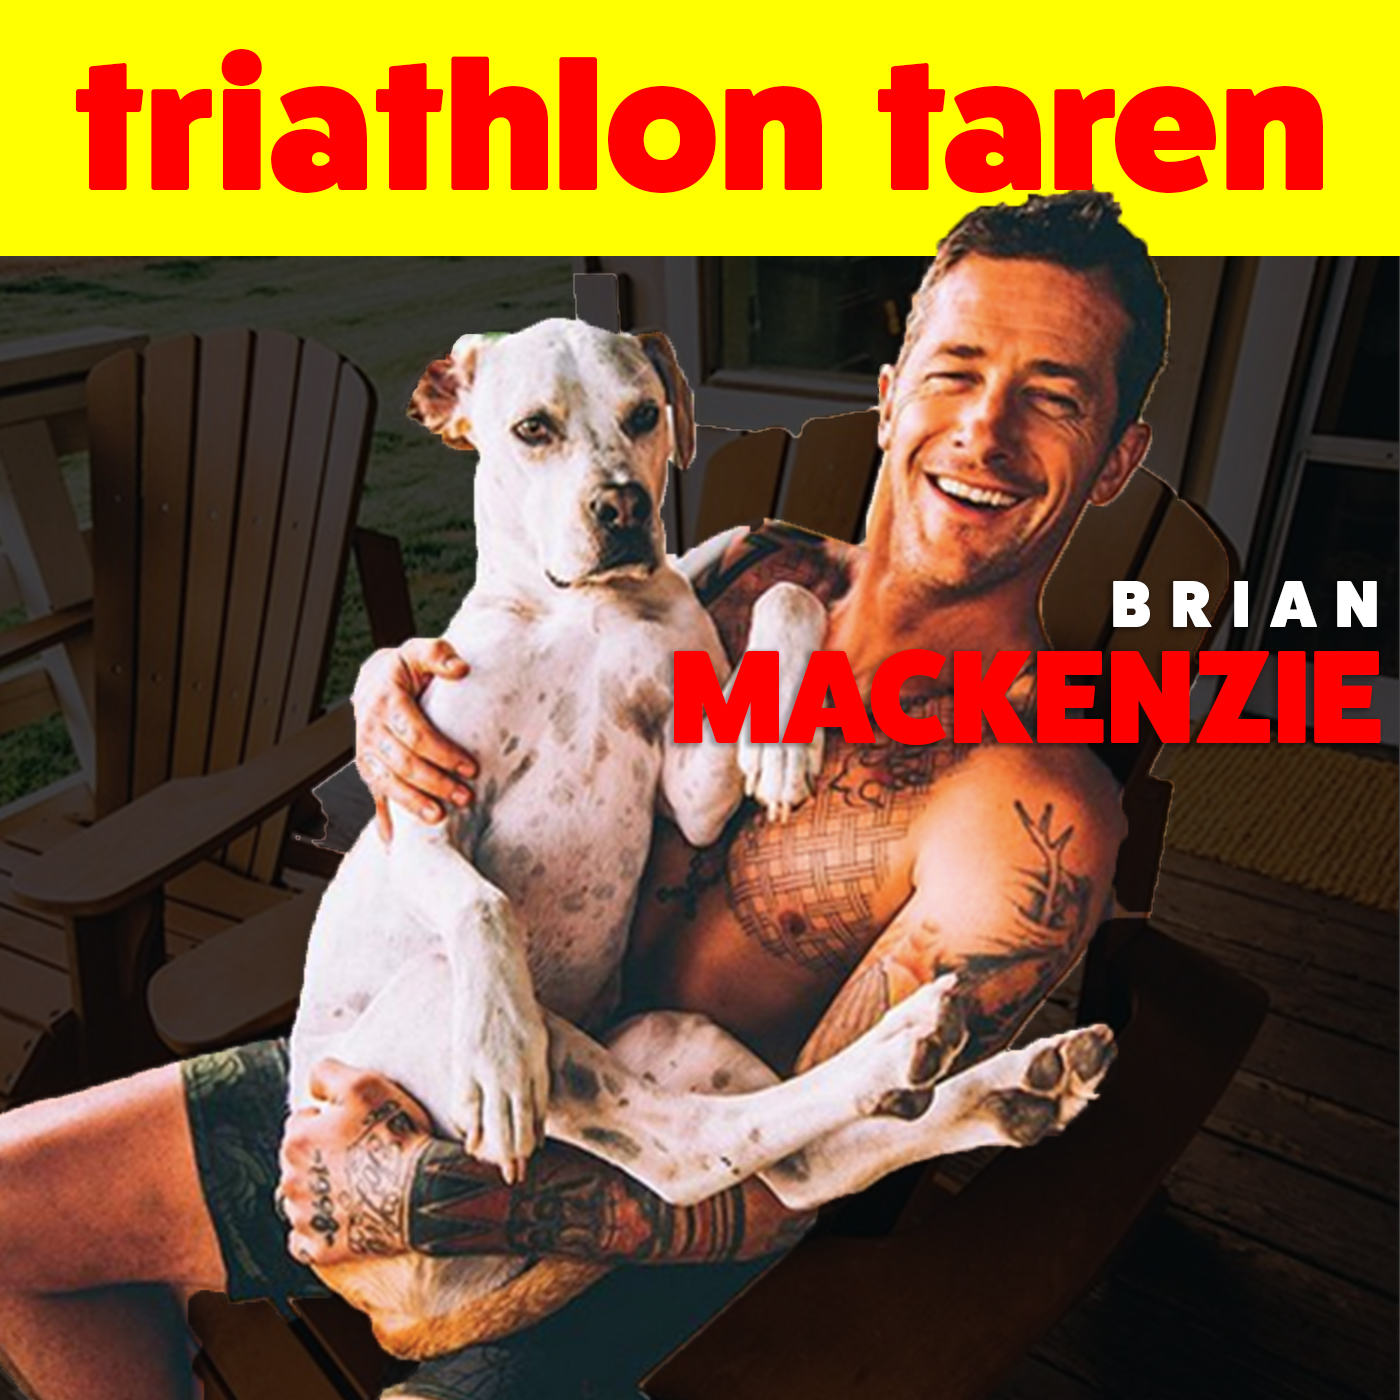 Brian MacKenzie Talks About Crossfit and High-Intensity Training to Get Faster in Triathlon